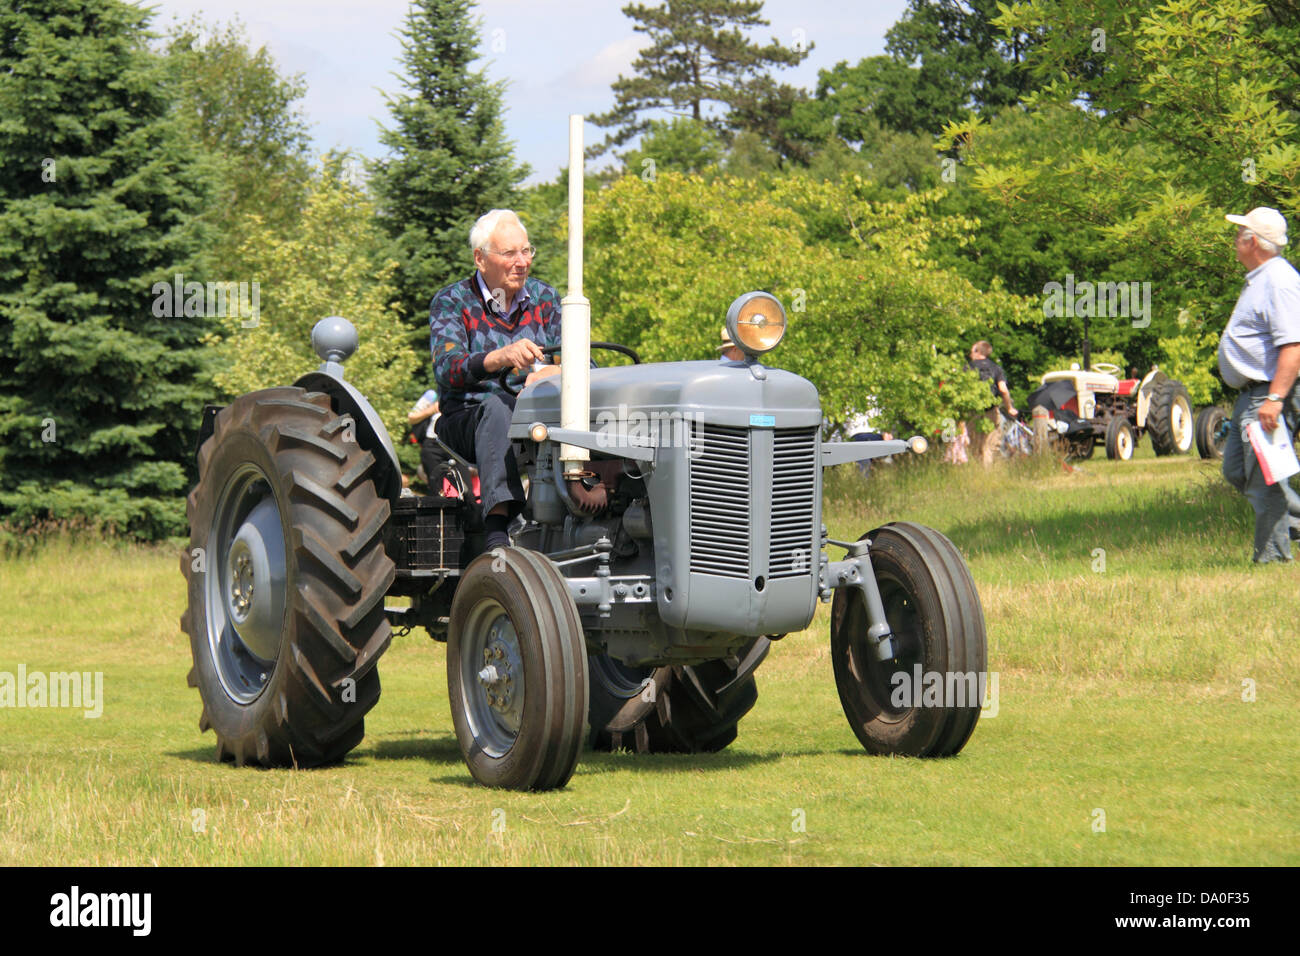 Ferguson Model TE20, vintage tractor display and parade, Royal Horticultural Society Garden Party Weekend, 29th - Stock Image